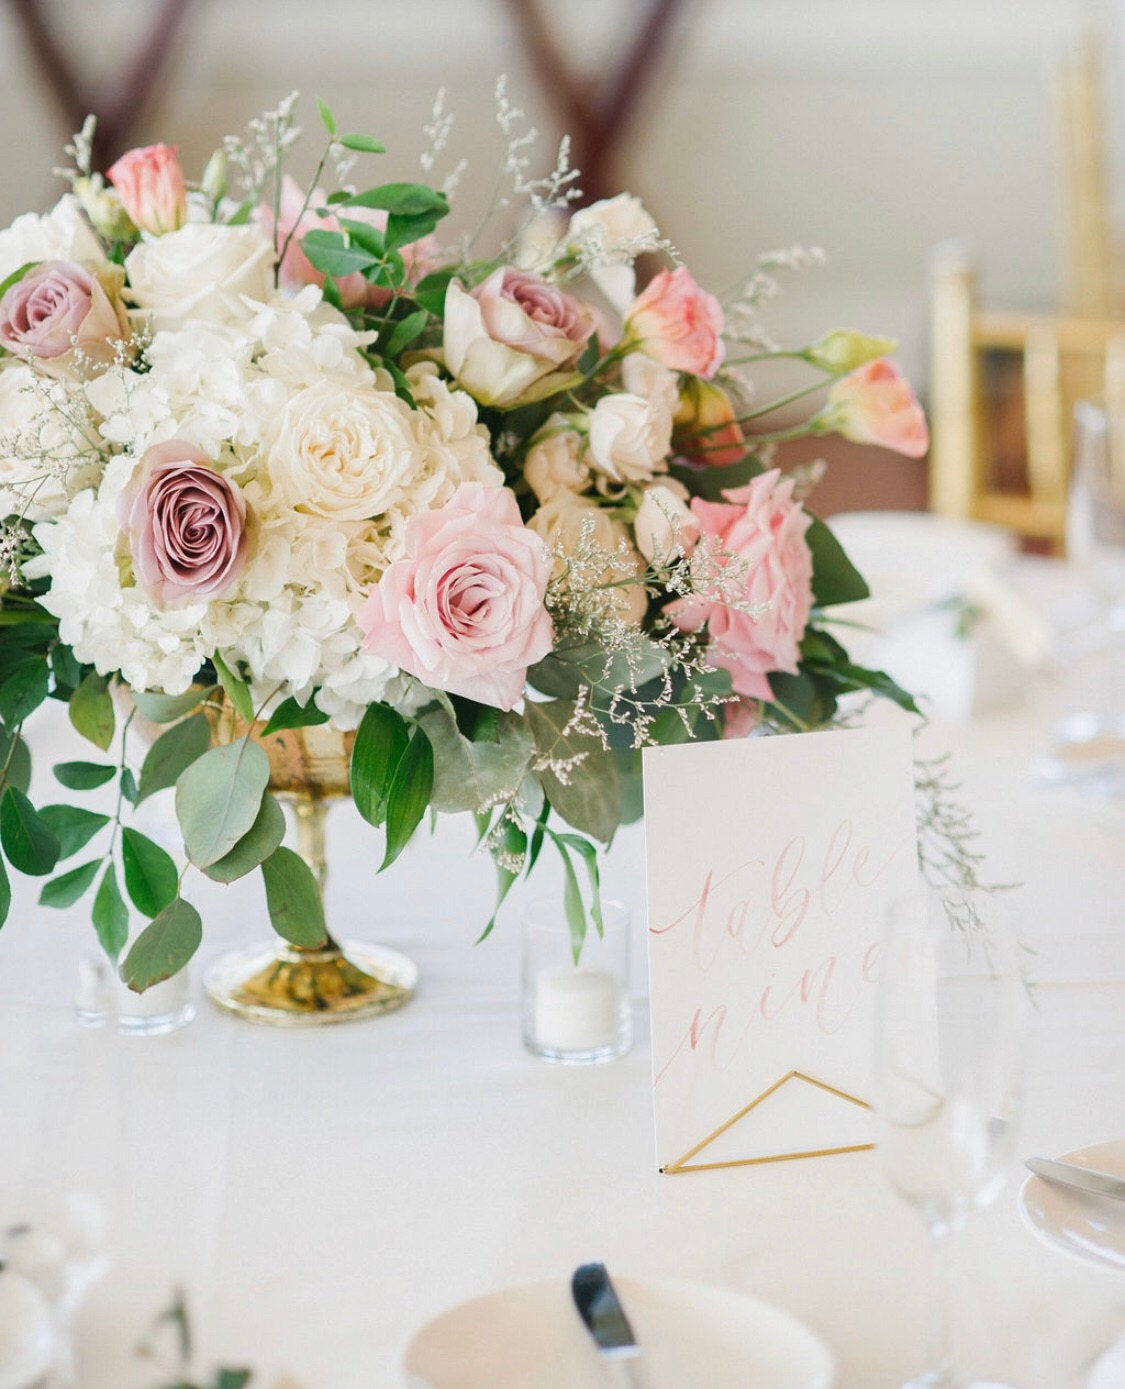 Dusty Rose and Blush Watercolor Table Numbers Olivia Gird Photography 2